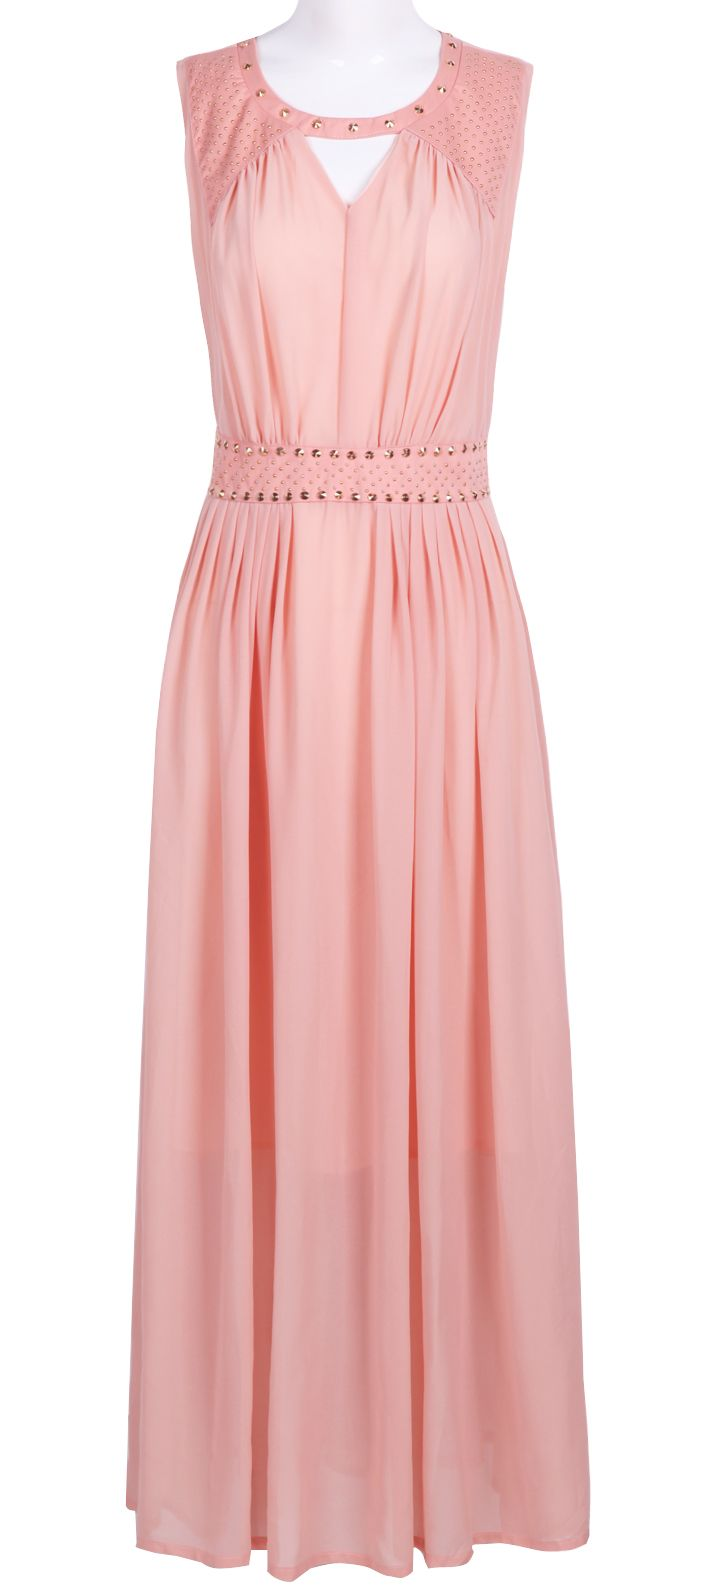 If this was a little more pink and less pastel id wear this as a wedding dress